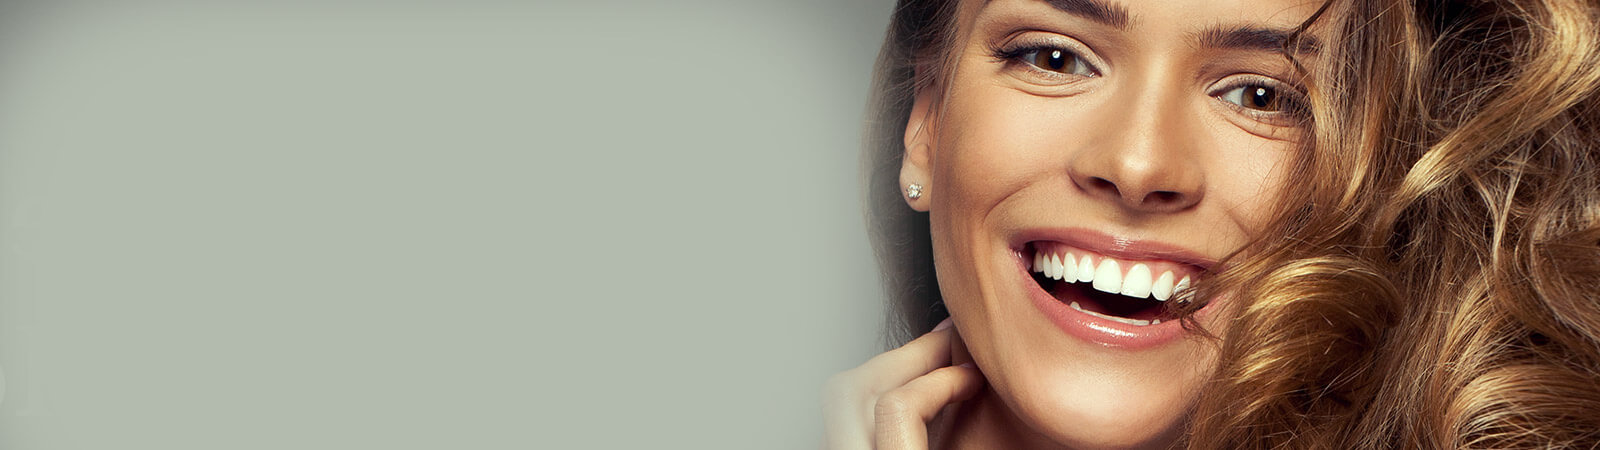 What is the cost of a dental implant restoration in San Francisco, CA?